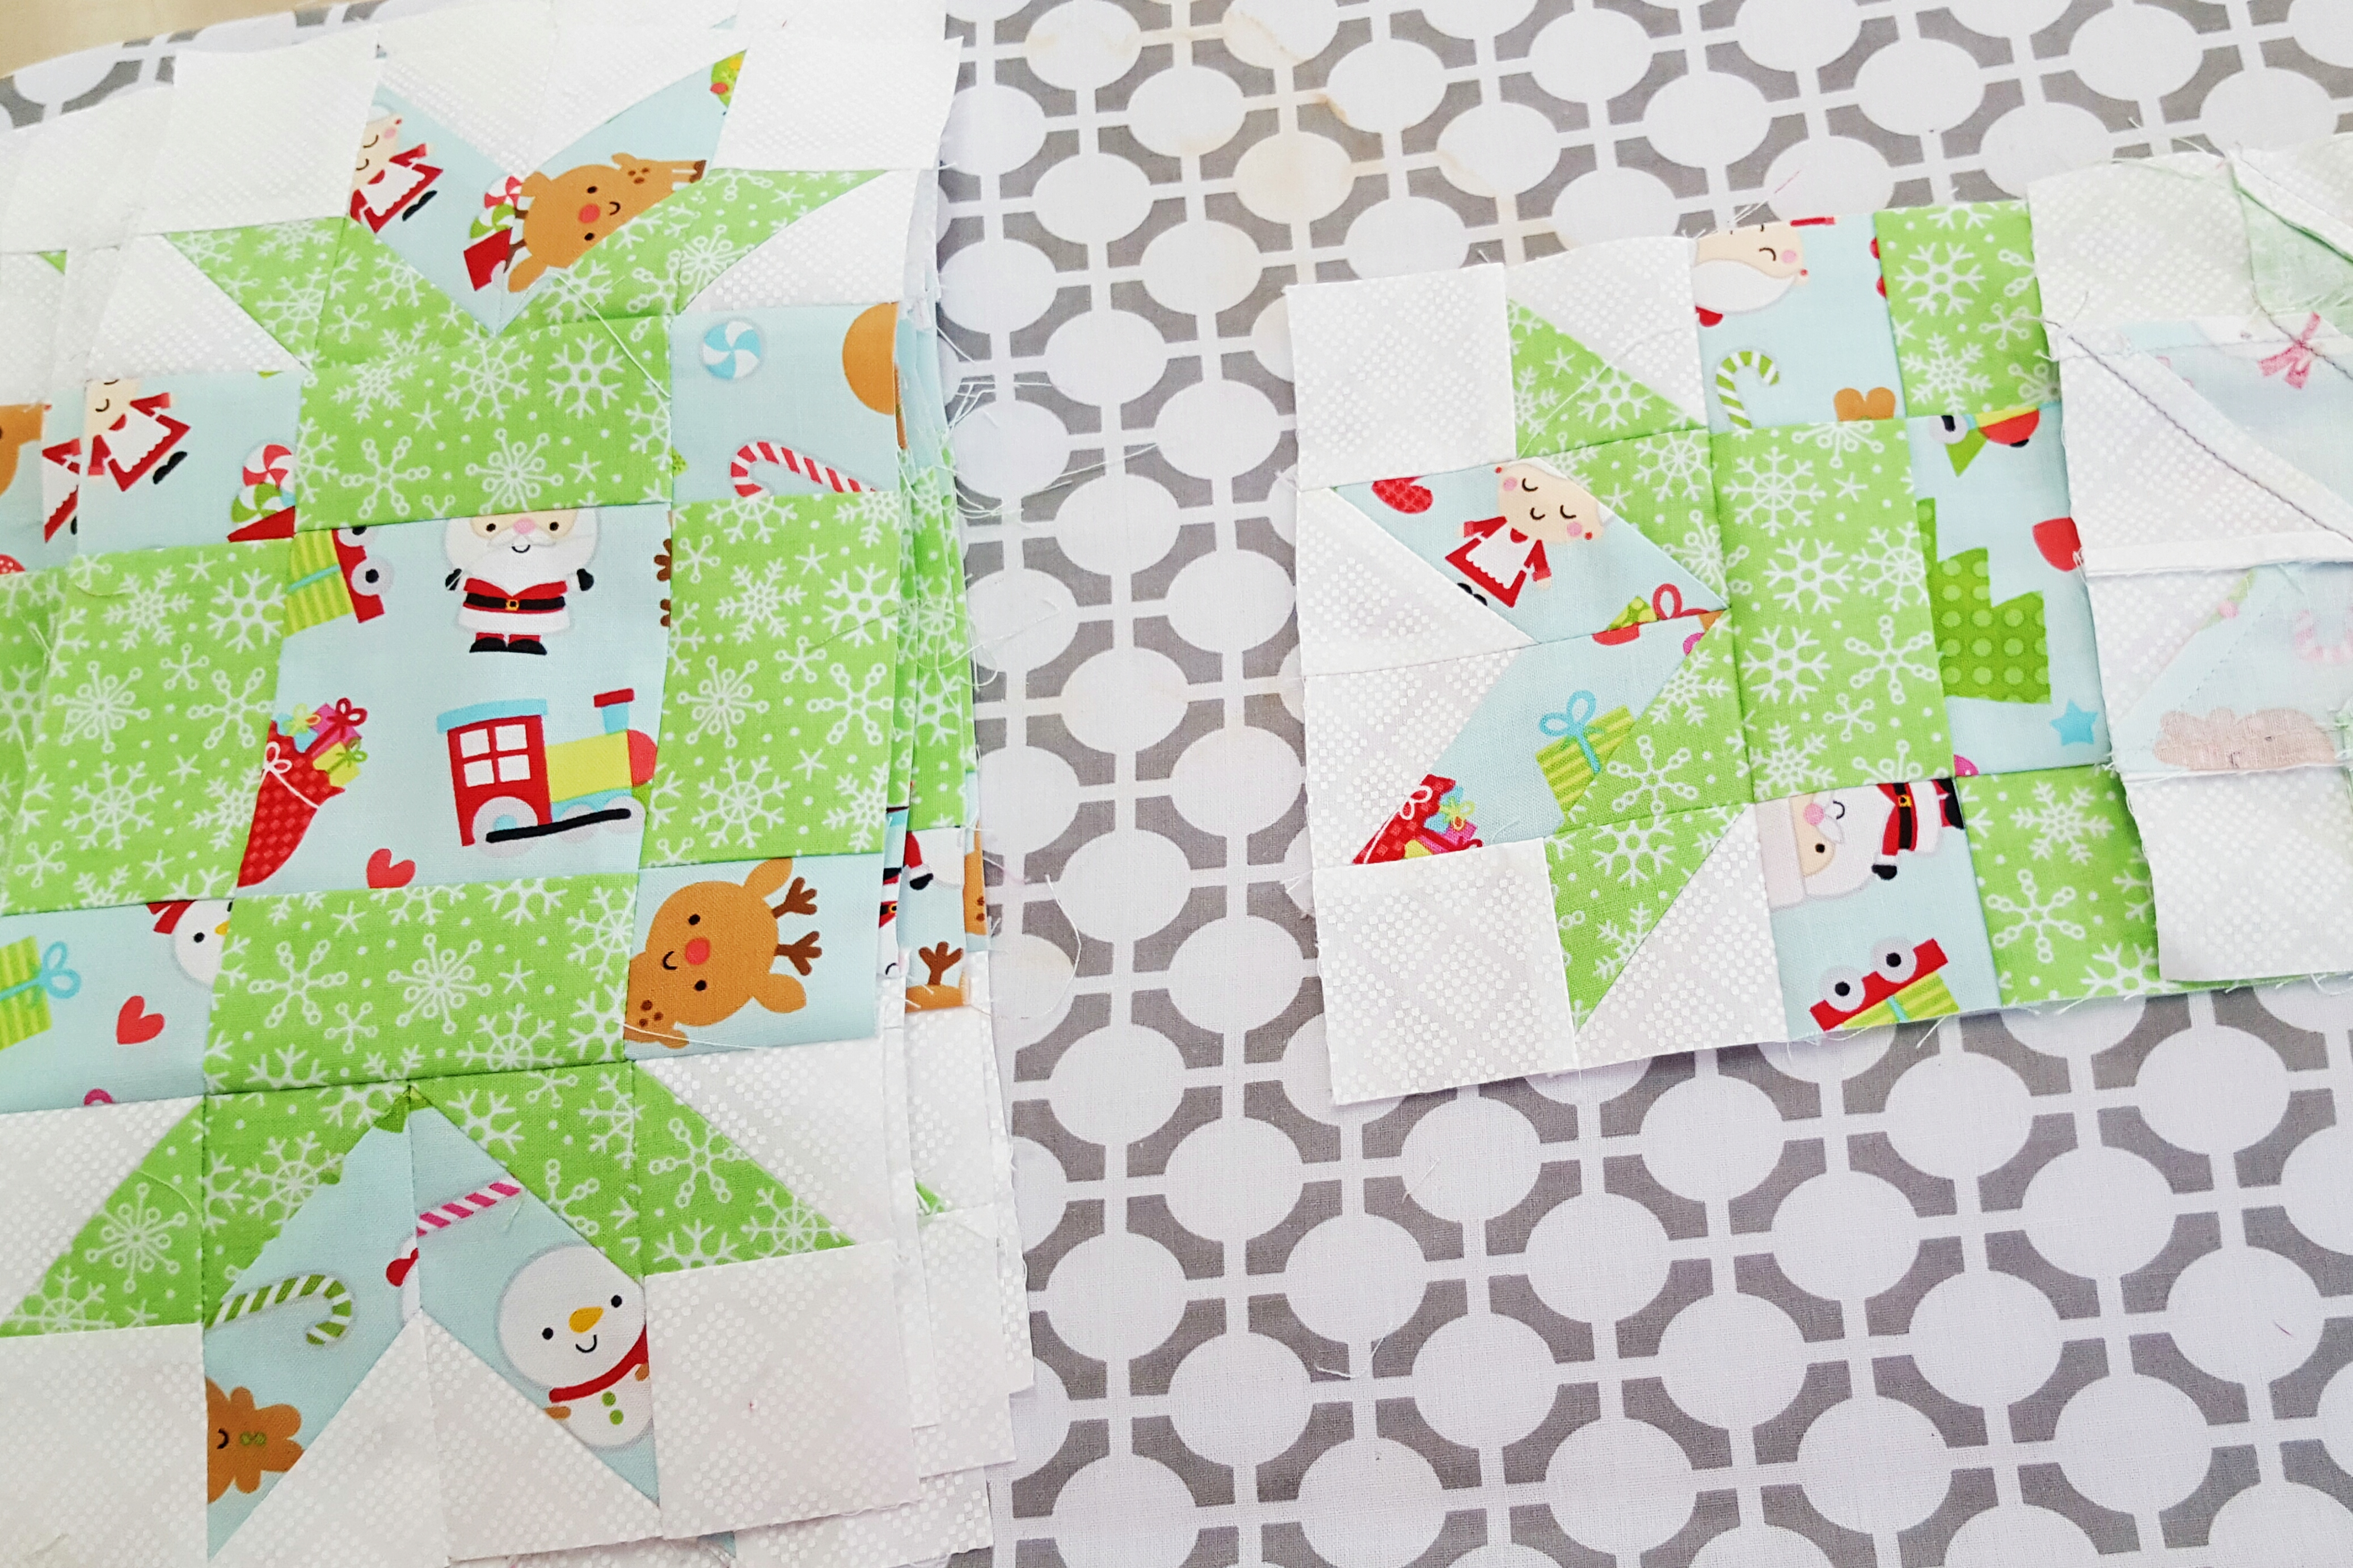 image about Free Printable Cat Quilt Patterns titled KQG Secret Quilt Pt 3. (+ No cost PRINTABLE)